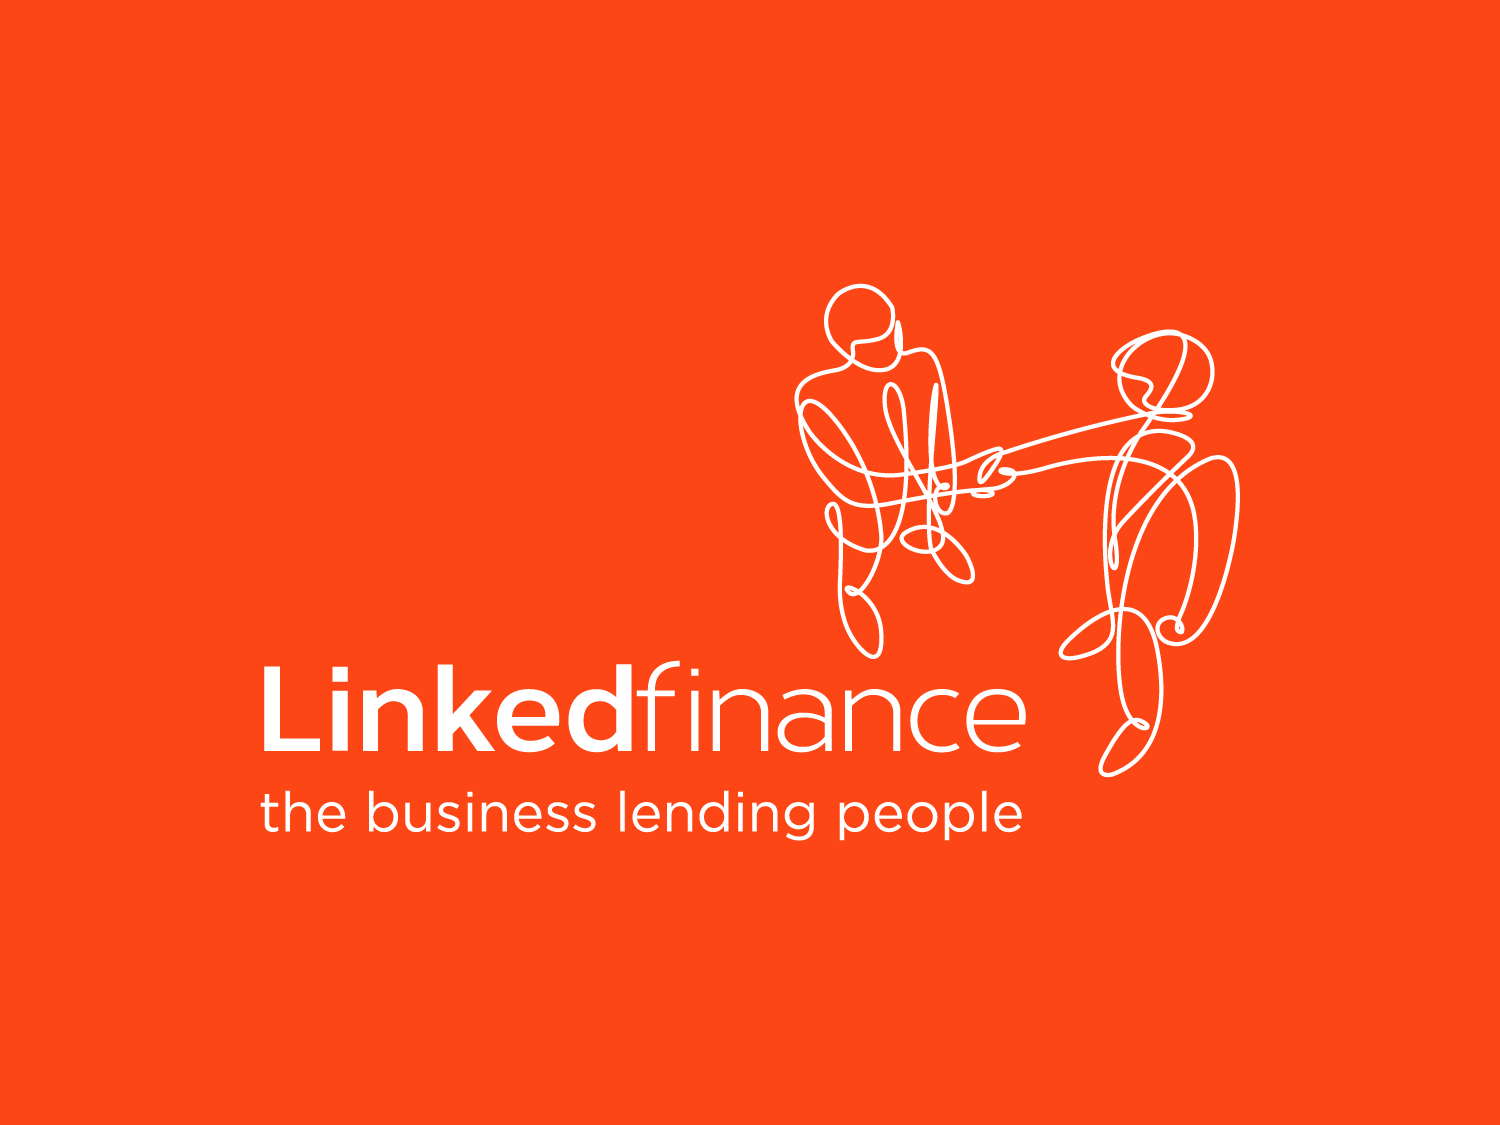 linkedfinance